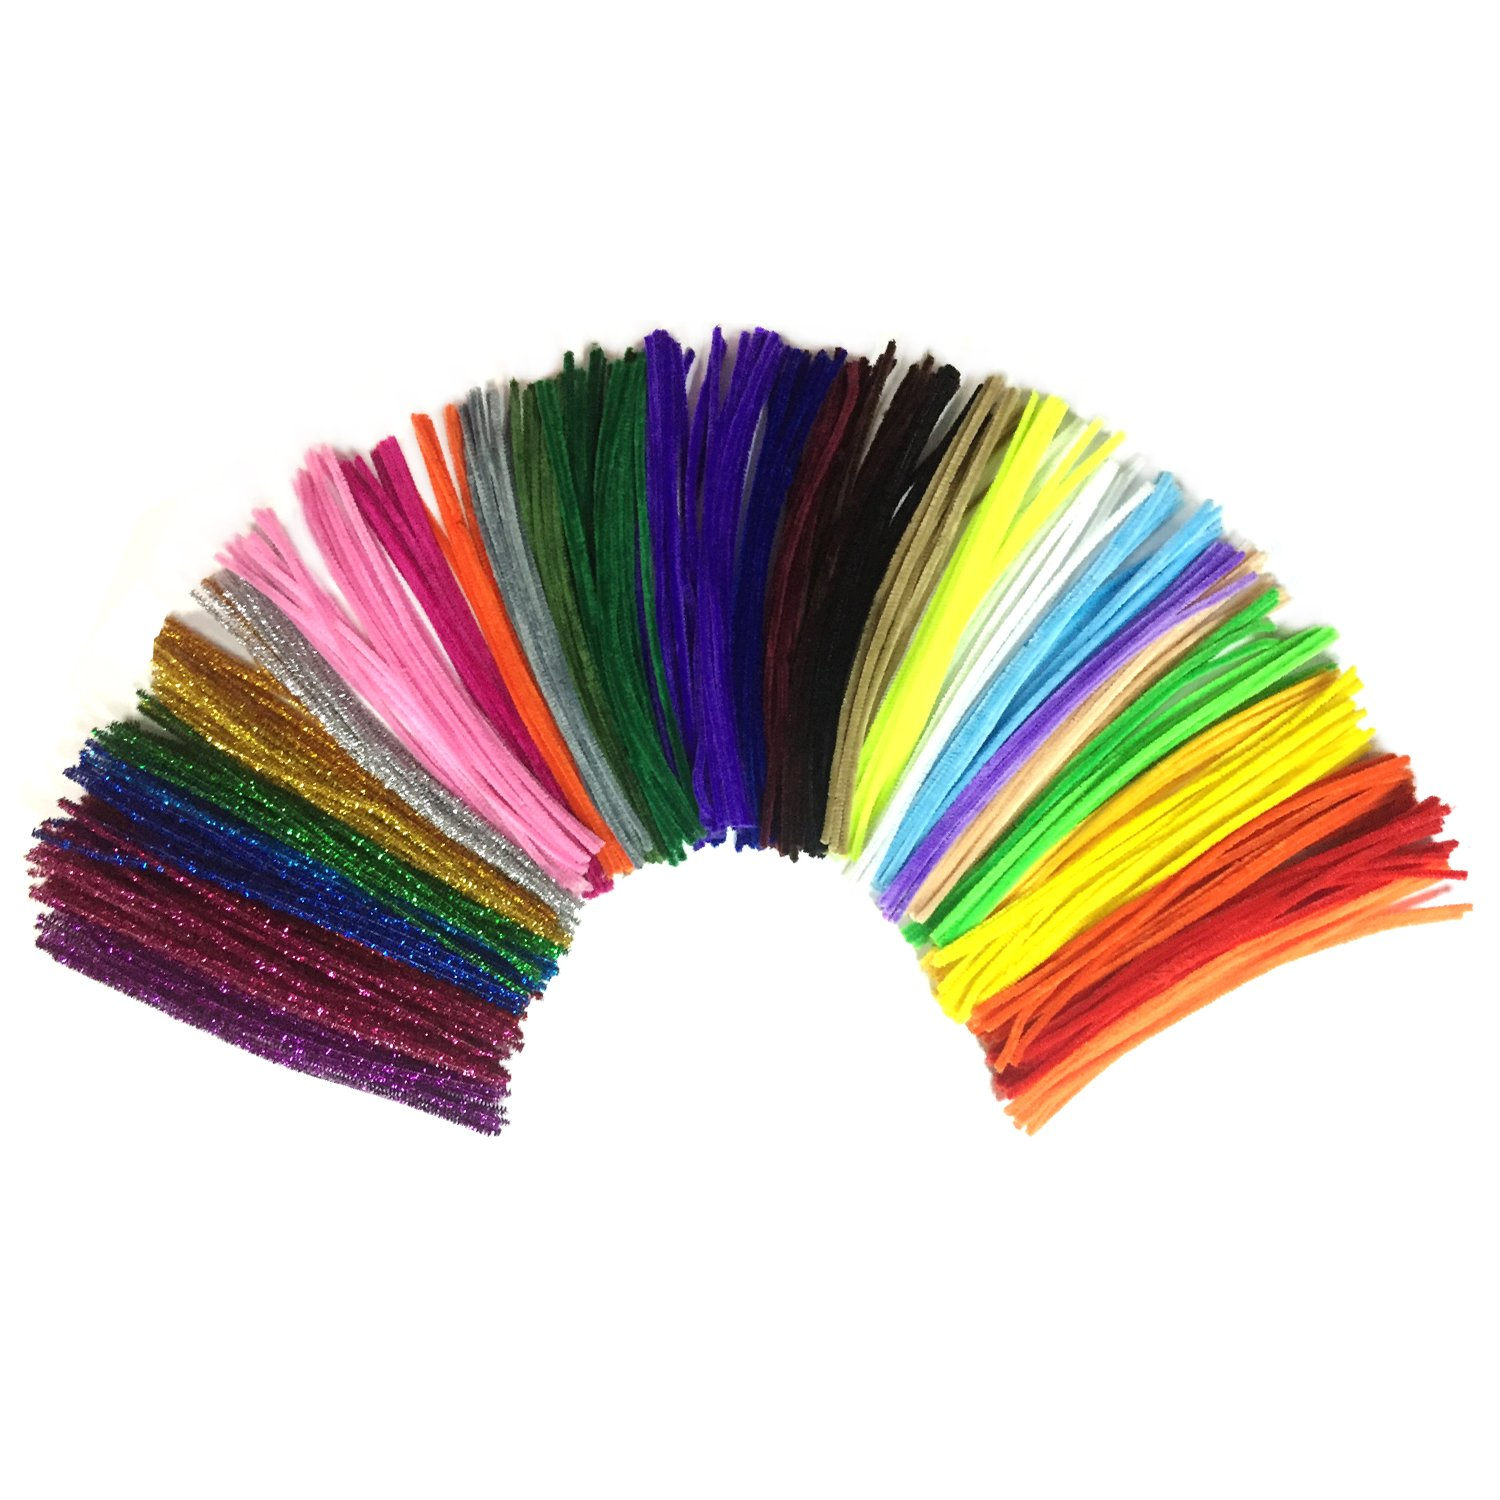 Wartoon 300 Pcs Assorted Colors and 100 Glitter Creative Pipe Cleaners DIY Art Craft Decorations Chenille Stems (6 mm x 35 cm)